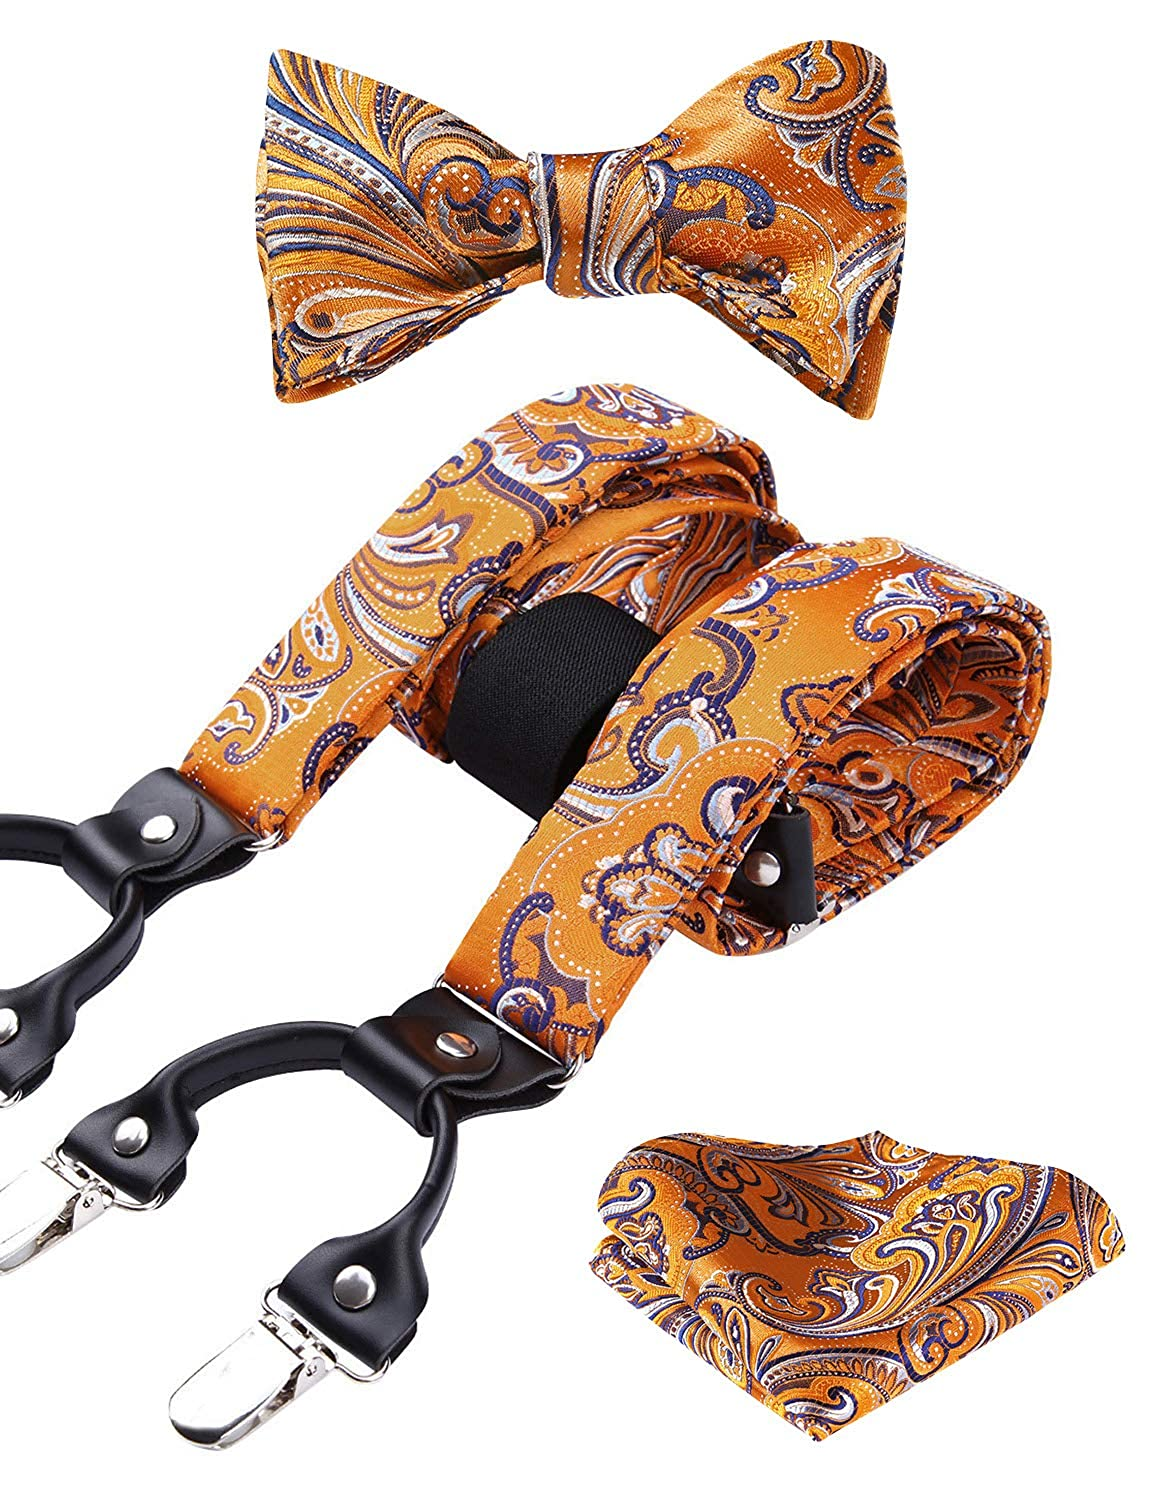 HISDERN Various Classic 6 Clips Suspenders /& Bow Tie and Pocket Square Set Y Shape Adjustable Braces SP923US3